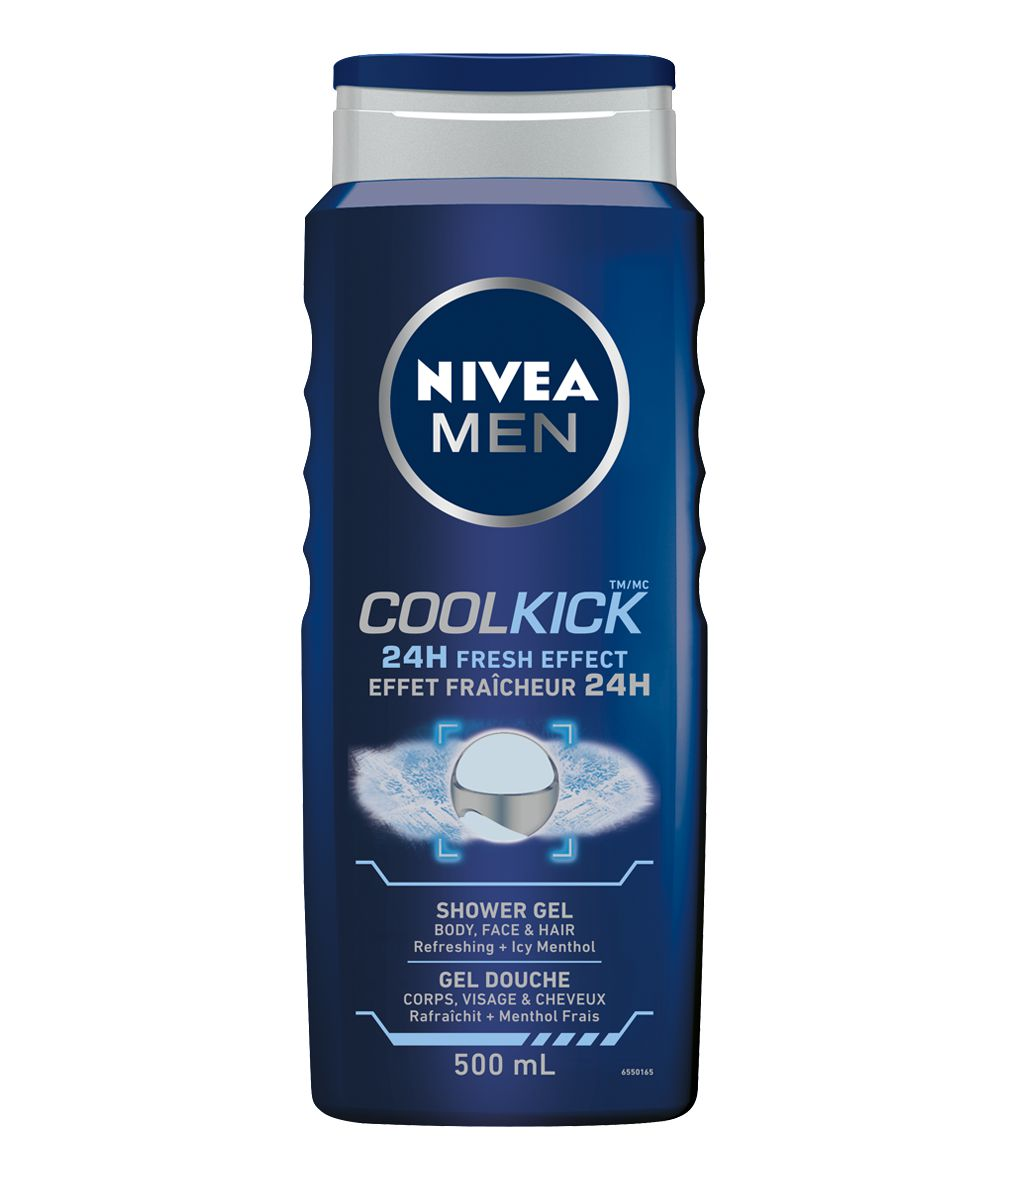 NIVEA MEN Shower Gel Cool Kick 500mL